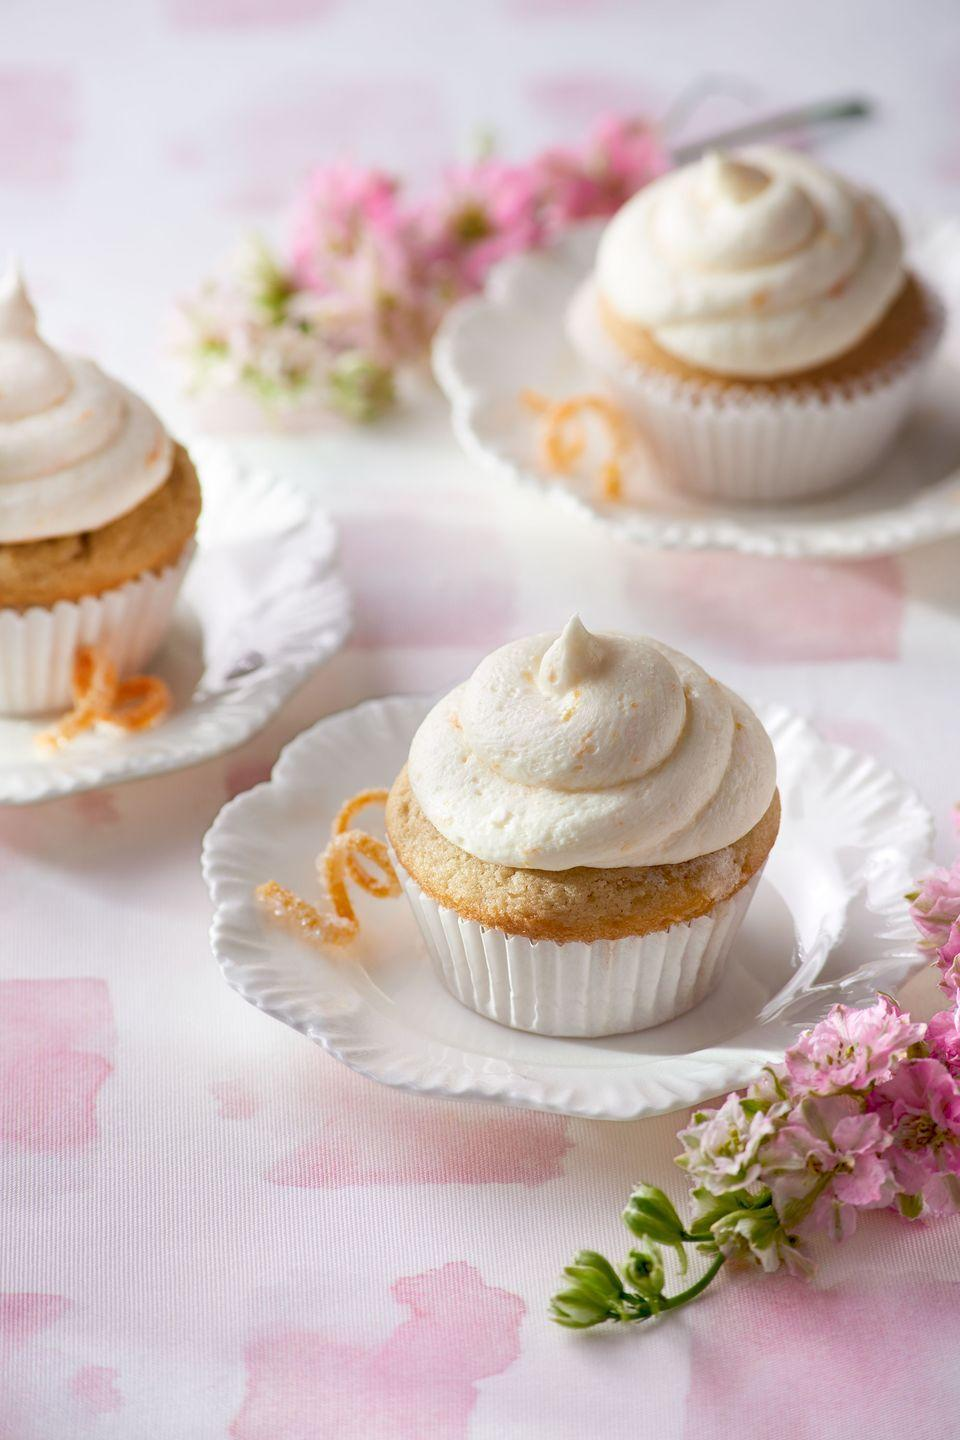 """<p>You probably already have all the ingredients you need for these classy cupcakes, which are a lovely addition to any <a href=""""https://www.countryliving.com/entertaining/g21/mother-tea-party-0507/"""" rel=""""nofollow noopener"""" target=""""_blank"""" data-ylk=""""slk:Mother's Day tea party"""" class=""""link rapid-noclick-resp"""">Mother's Day tea party</a>.</p><p><strong><a href=""""https://www.countryliving.com/food-drinks/recipes/a37732/lady-grey-cupcakes-with-orange-zest-frosting-recipe/"""" rel=""""nofollow noopener"""" target=""""_blank"""" data-ylk=""""slk:Get the recipe"""" class=""""link rapid-noclick-resp"""">Get the recipe</a>.</strong></p>"""